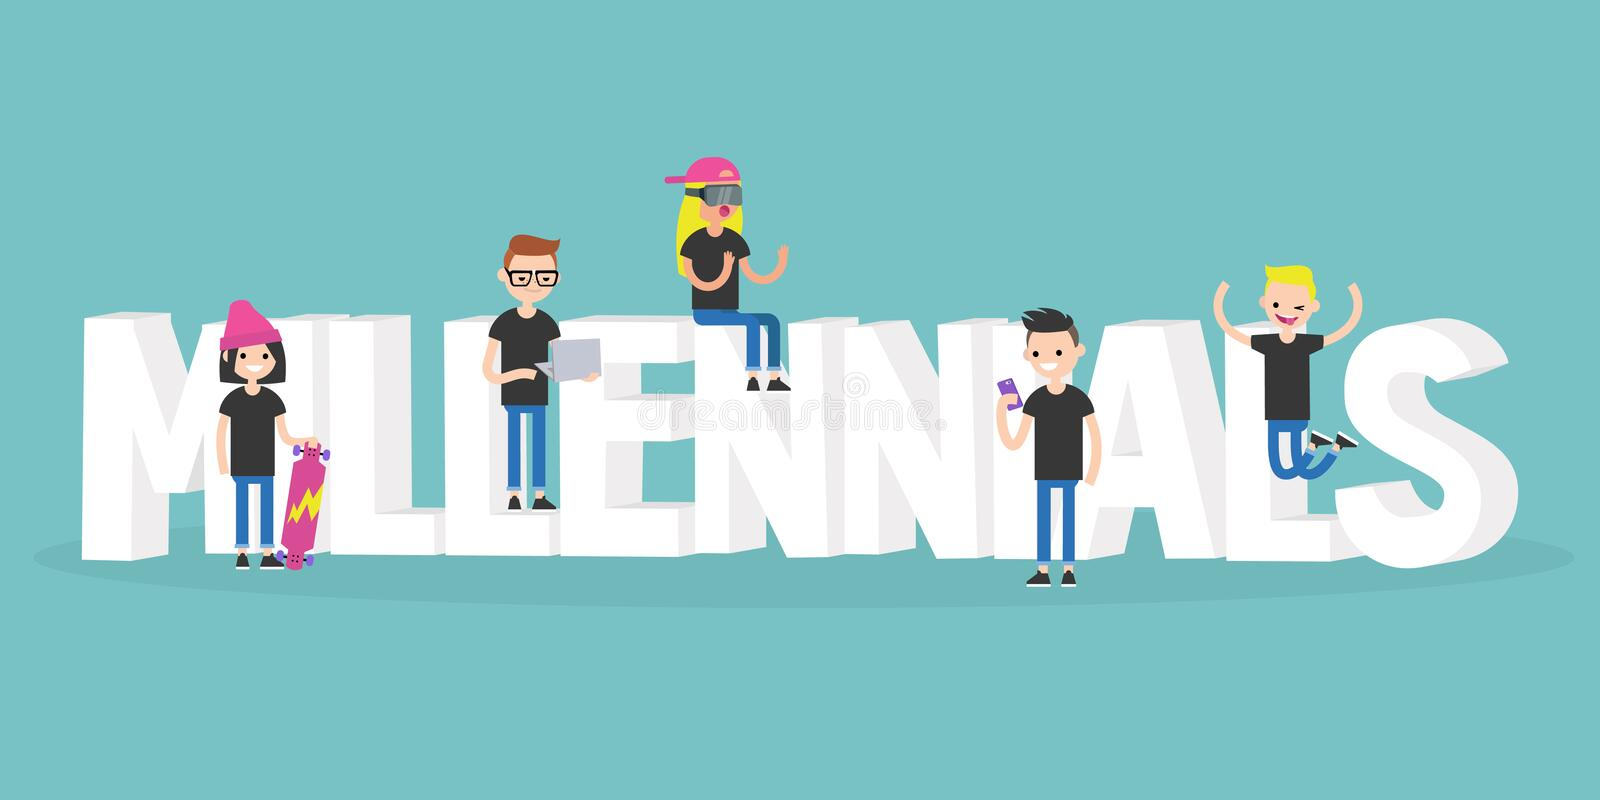 Millennial illustrerat tecken: unga moderna tecken stock illustrationer